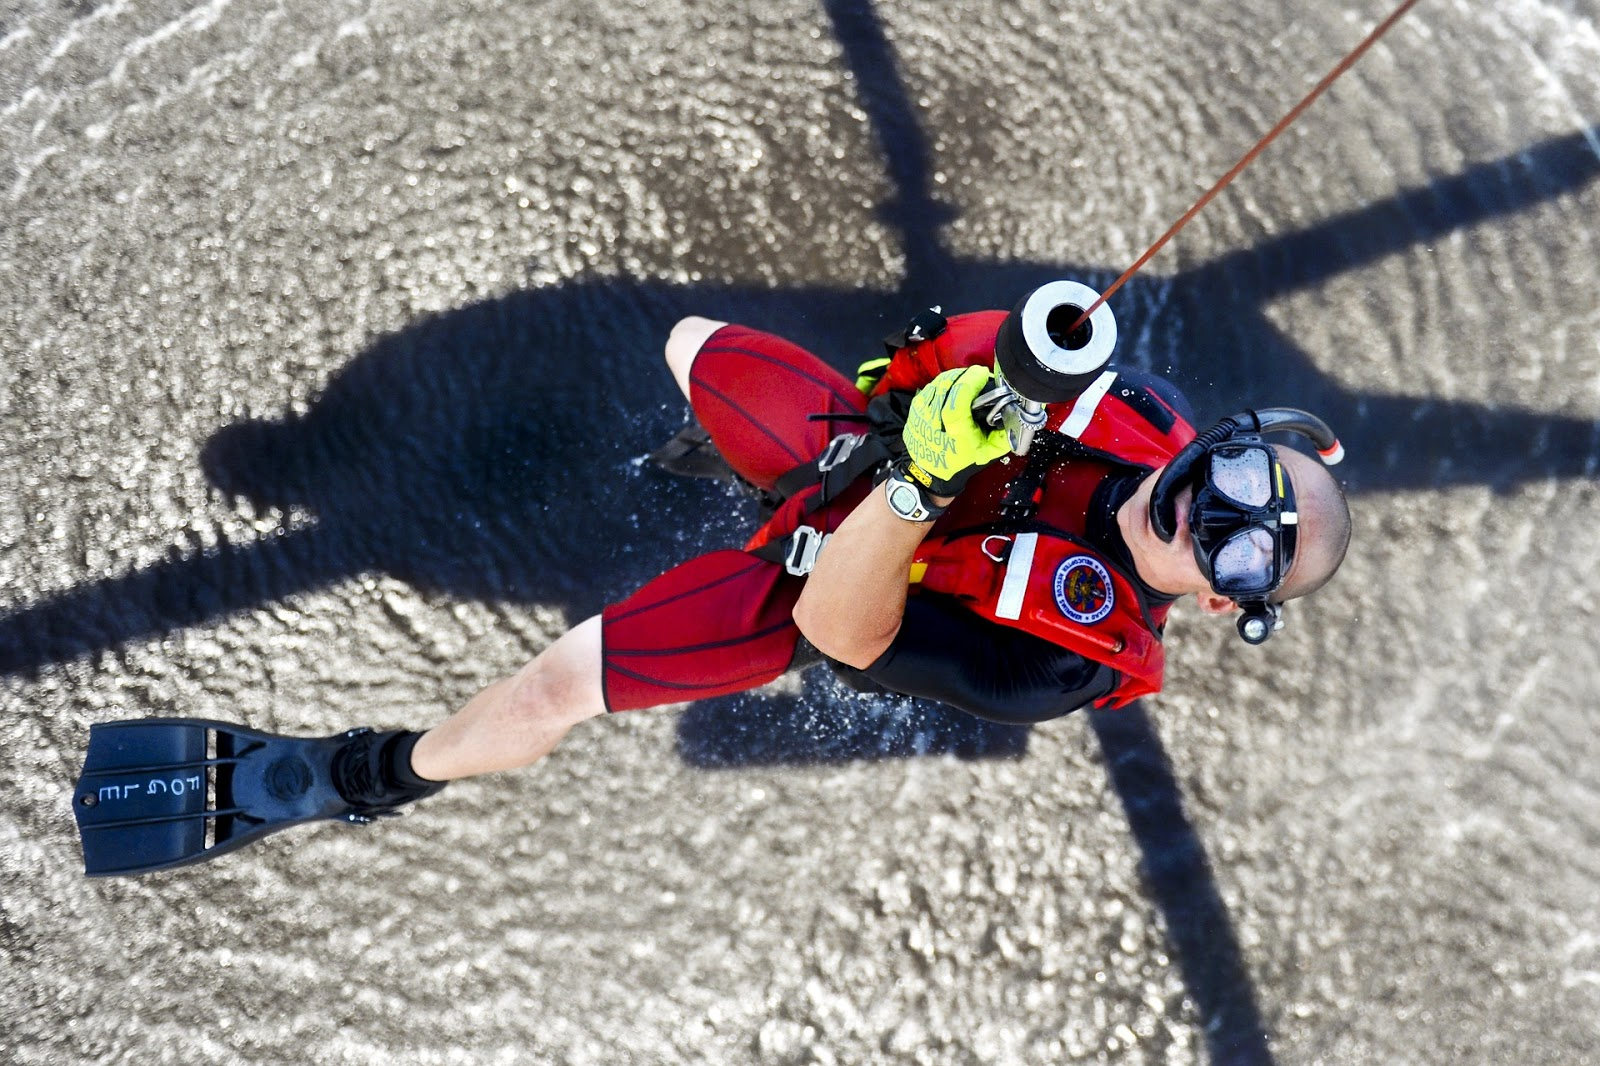 coast guard rescue swimmer is lowered into the ocean from a helicopter to illustrate a blog post about rescue mission movies